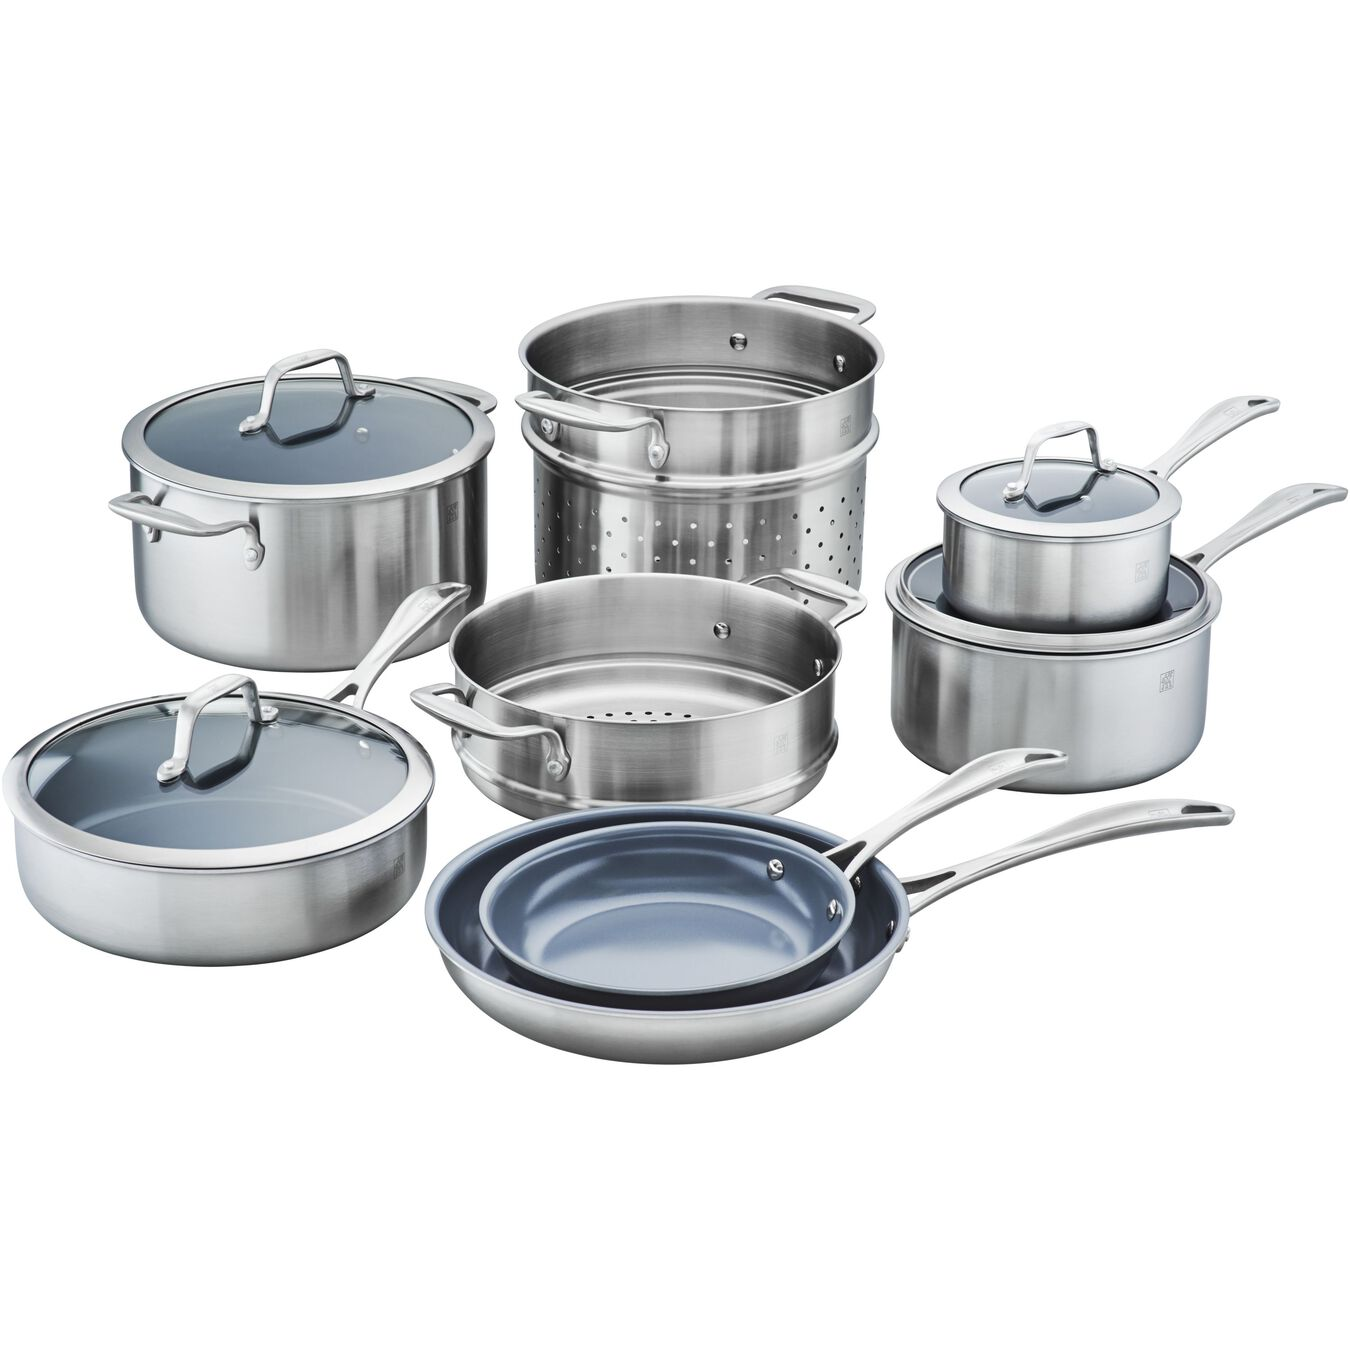 3-ply 12-pc Stainless Steel Ceramic Nonstick Cookware Set,,large 1